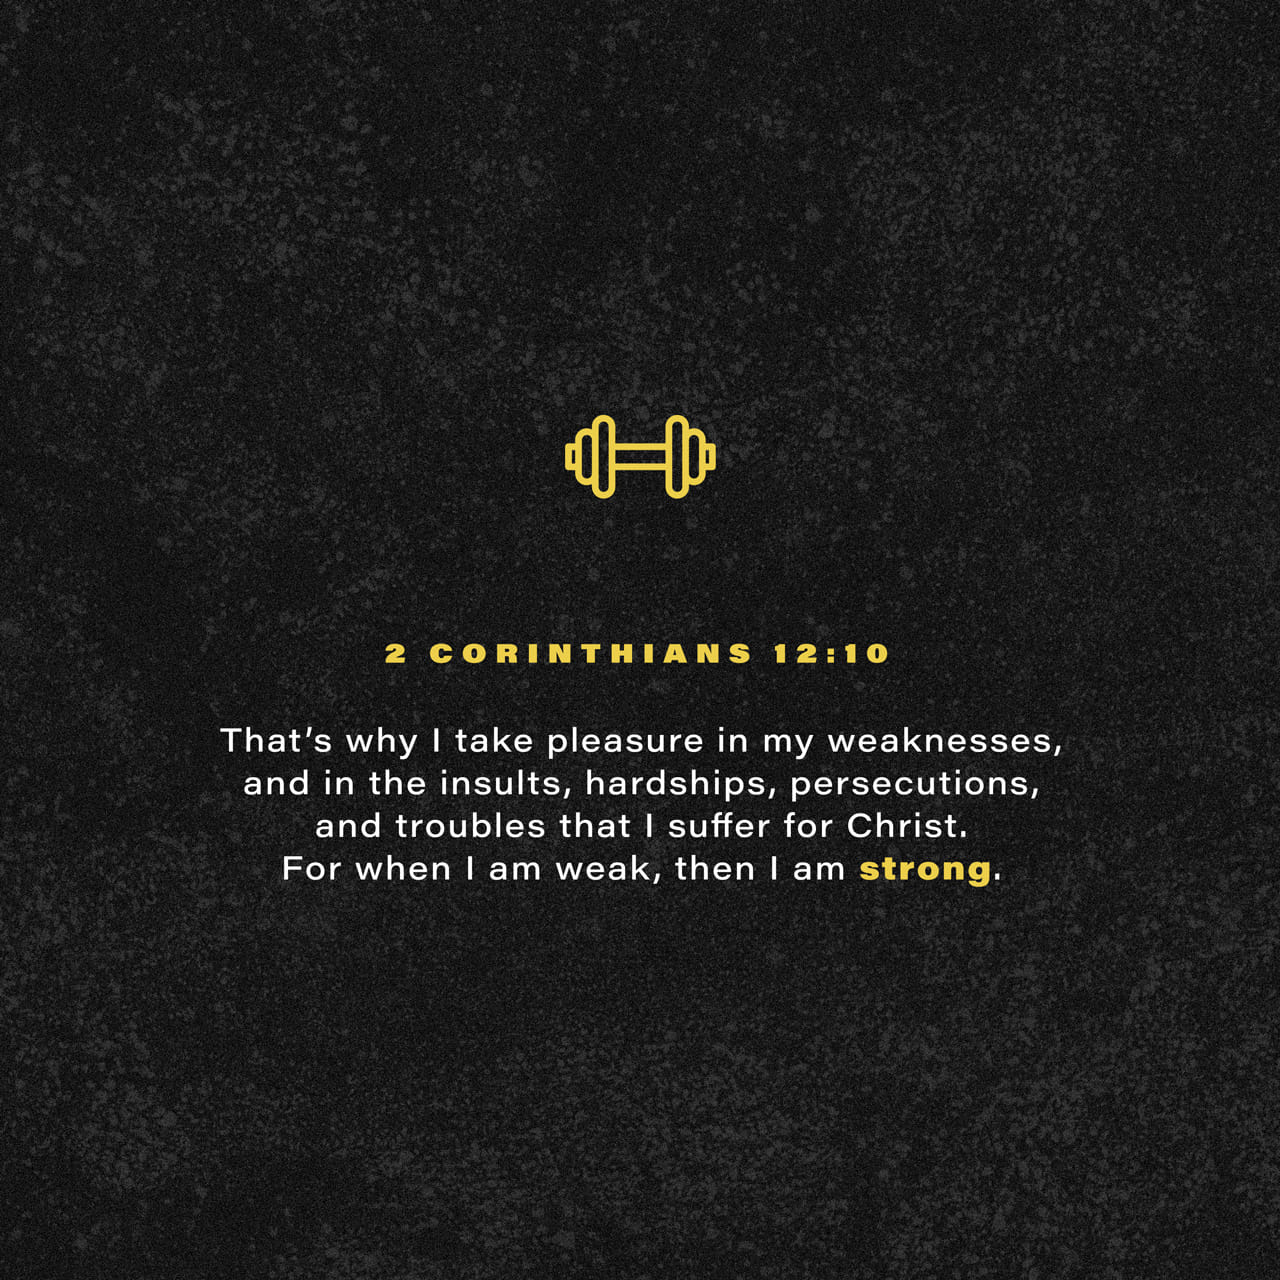 2 Corinthians 12:9-12 And he said unto me, My grace is sufficient for thee: for my strength is made perfect in weakness. Most gladly therefore will I rather glory in my infirmities, that the power of Christ may rest upon m | King James Version (KJV)